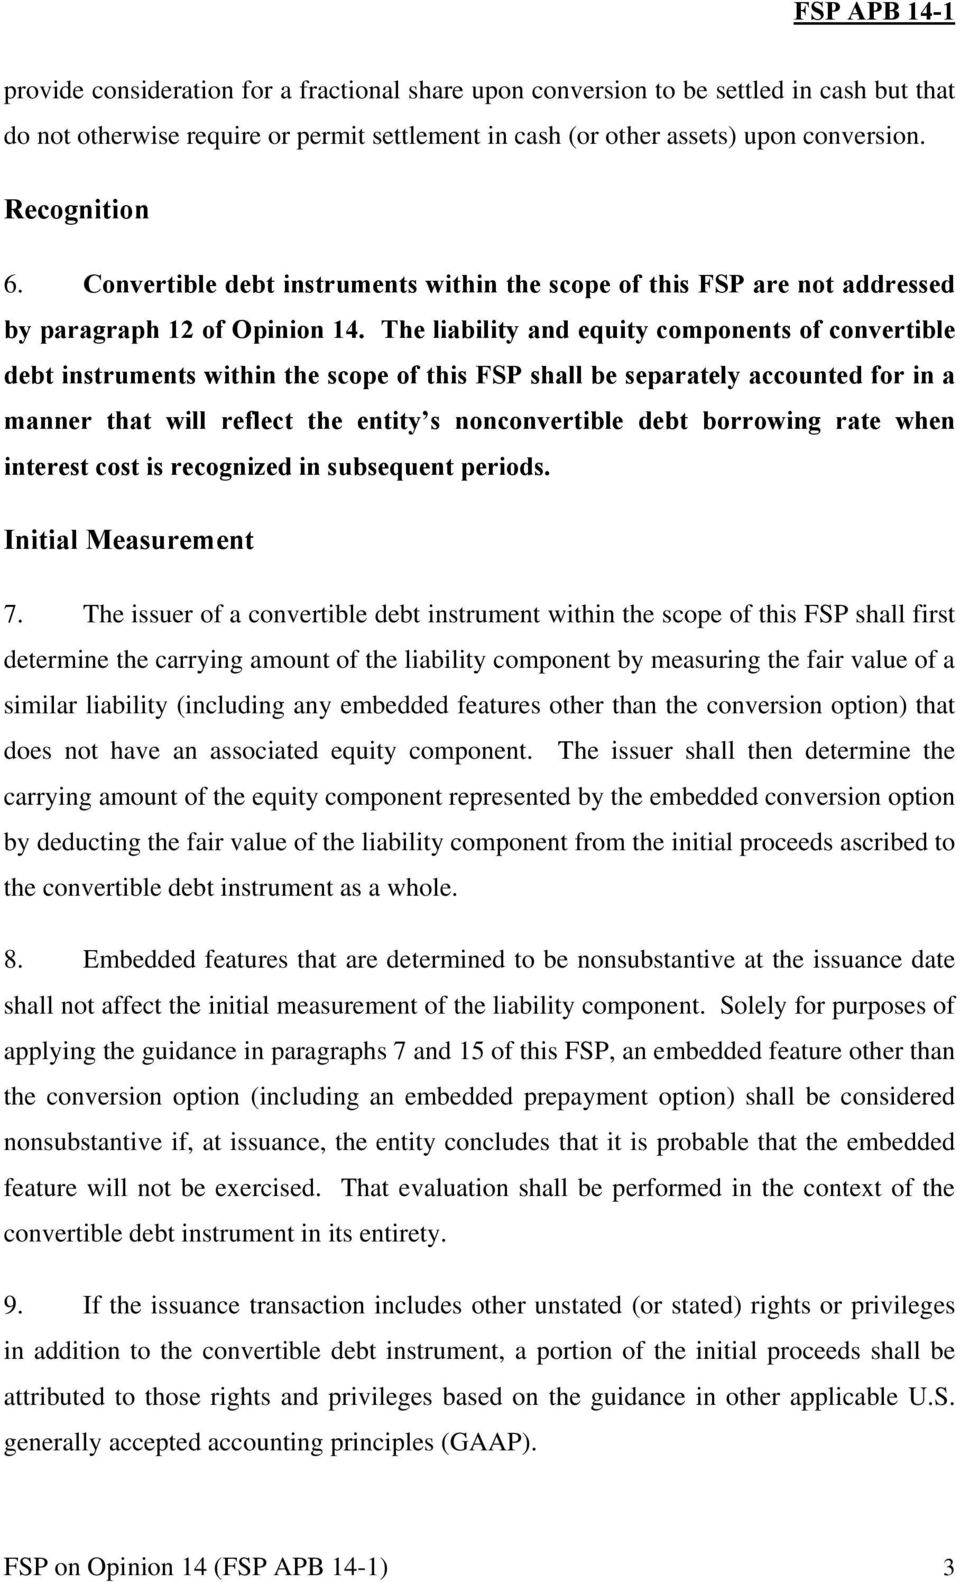 The liability and equity components of convertible debt instruments within the scope of this FSP shall be separately accounted for in a manner that will reflect the entity s nonconvertible debt